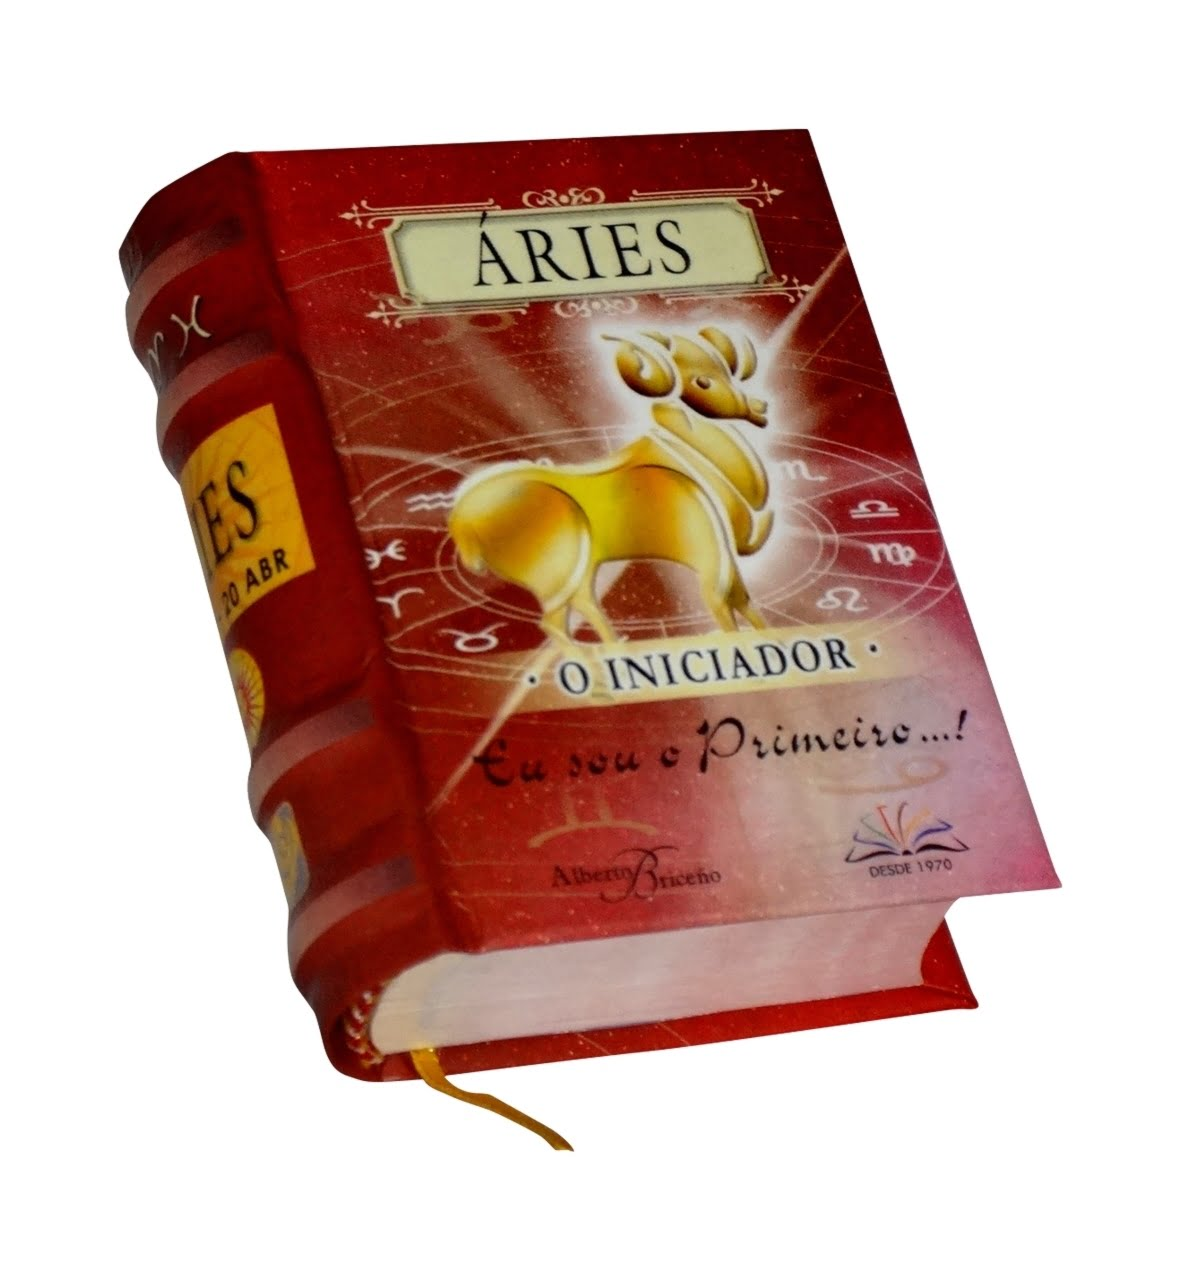 aries_portugues-miniature-book-libro